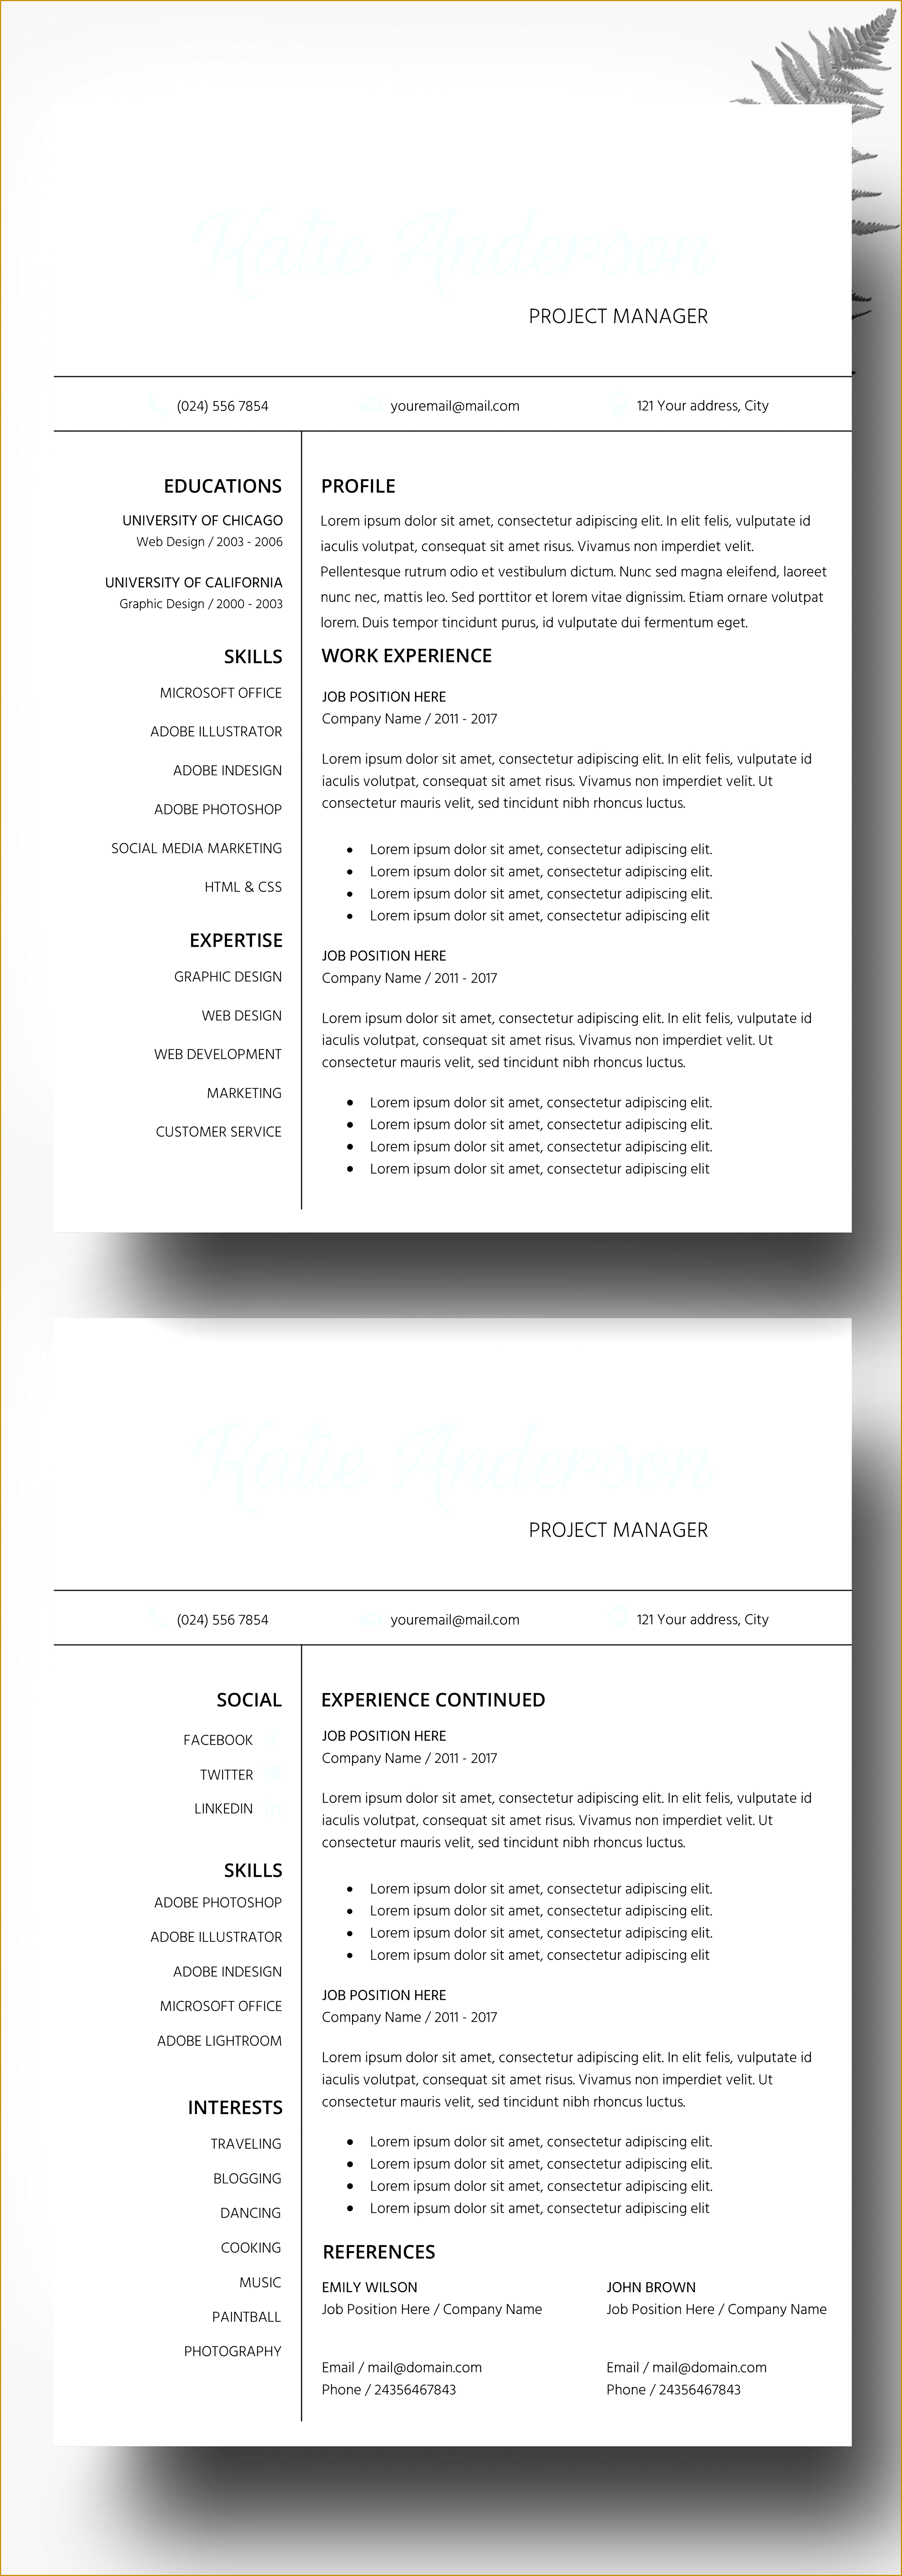 0dff a190b2ccdad911b9311d Top Result 50 Lovely Generic Cover Letter for Teachers Pic 2018 Hzt6 93003255